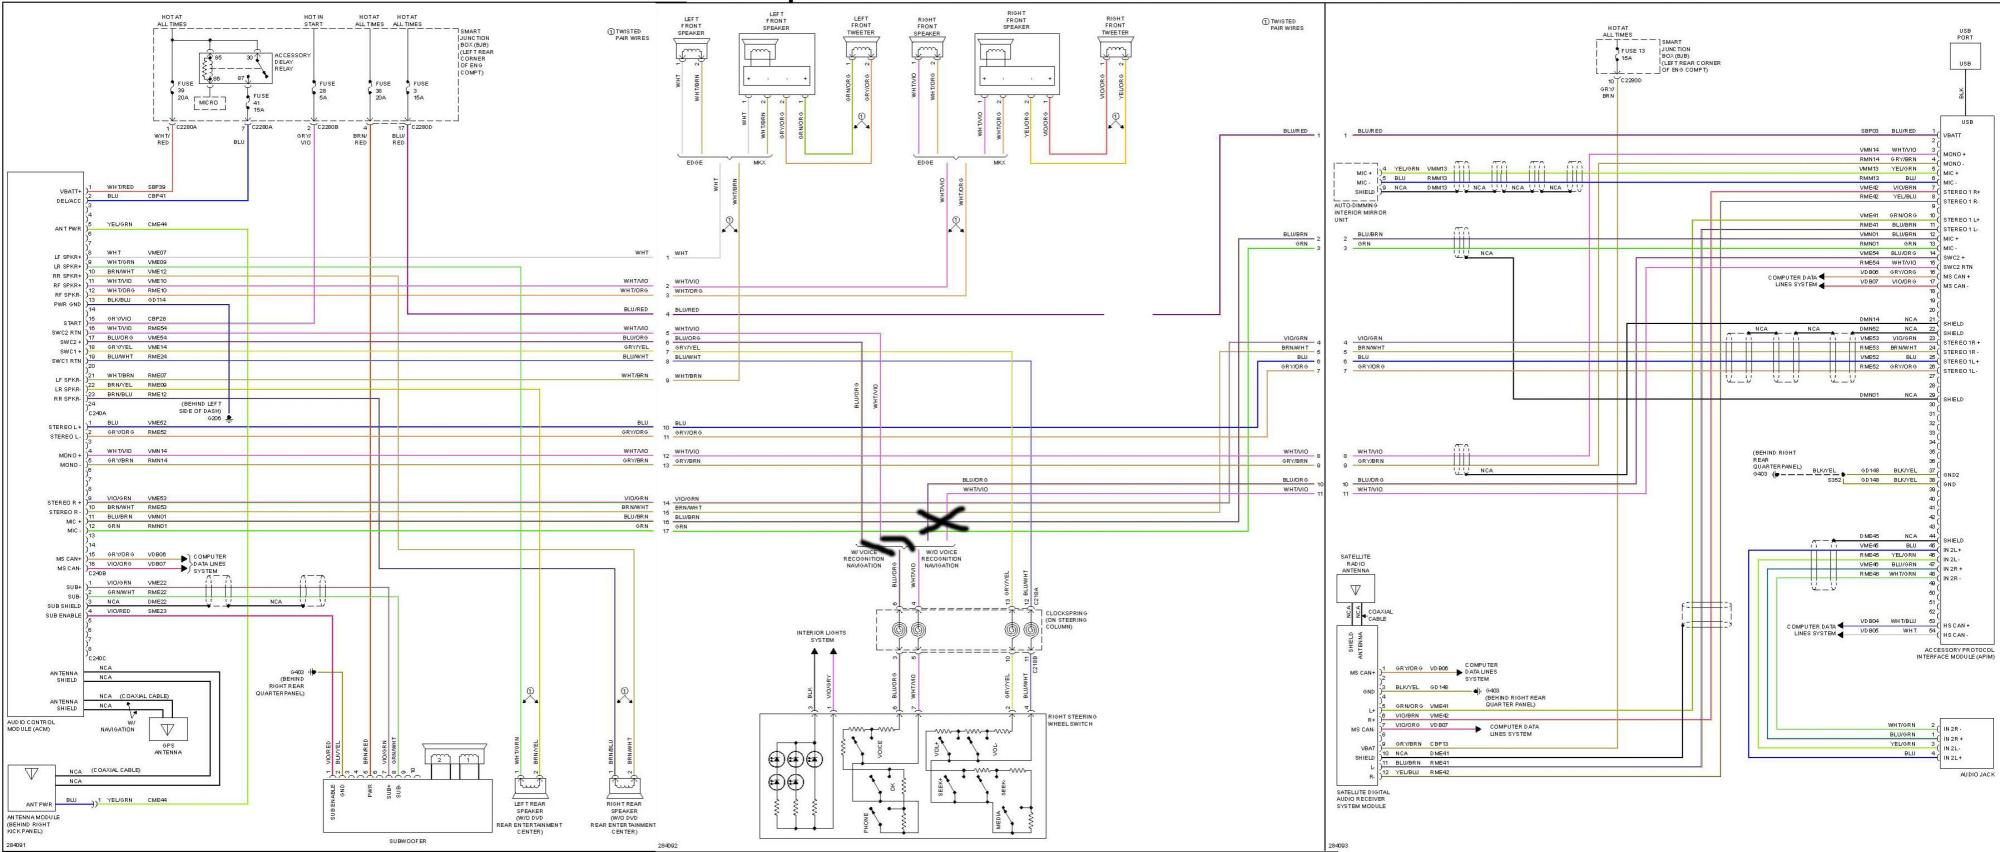 hight resolution of 2011 f250 wiring diagram navigation schematics wiring diagrams u2022 rh parntesis co 2011 ford f